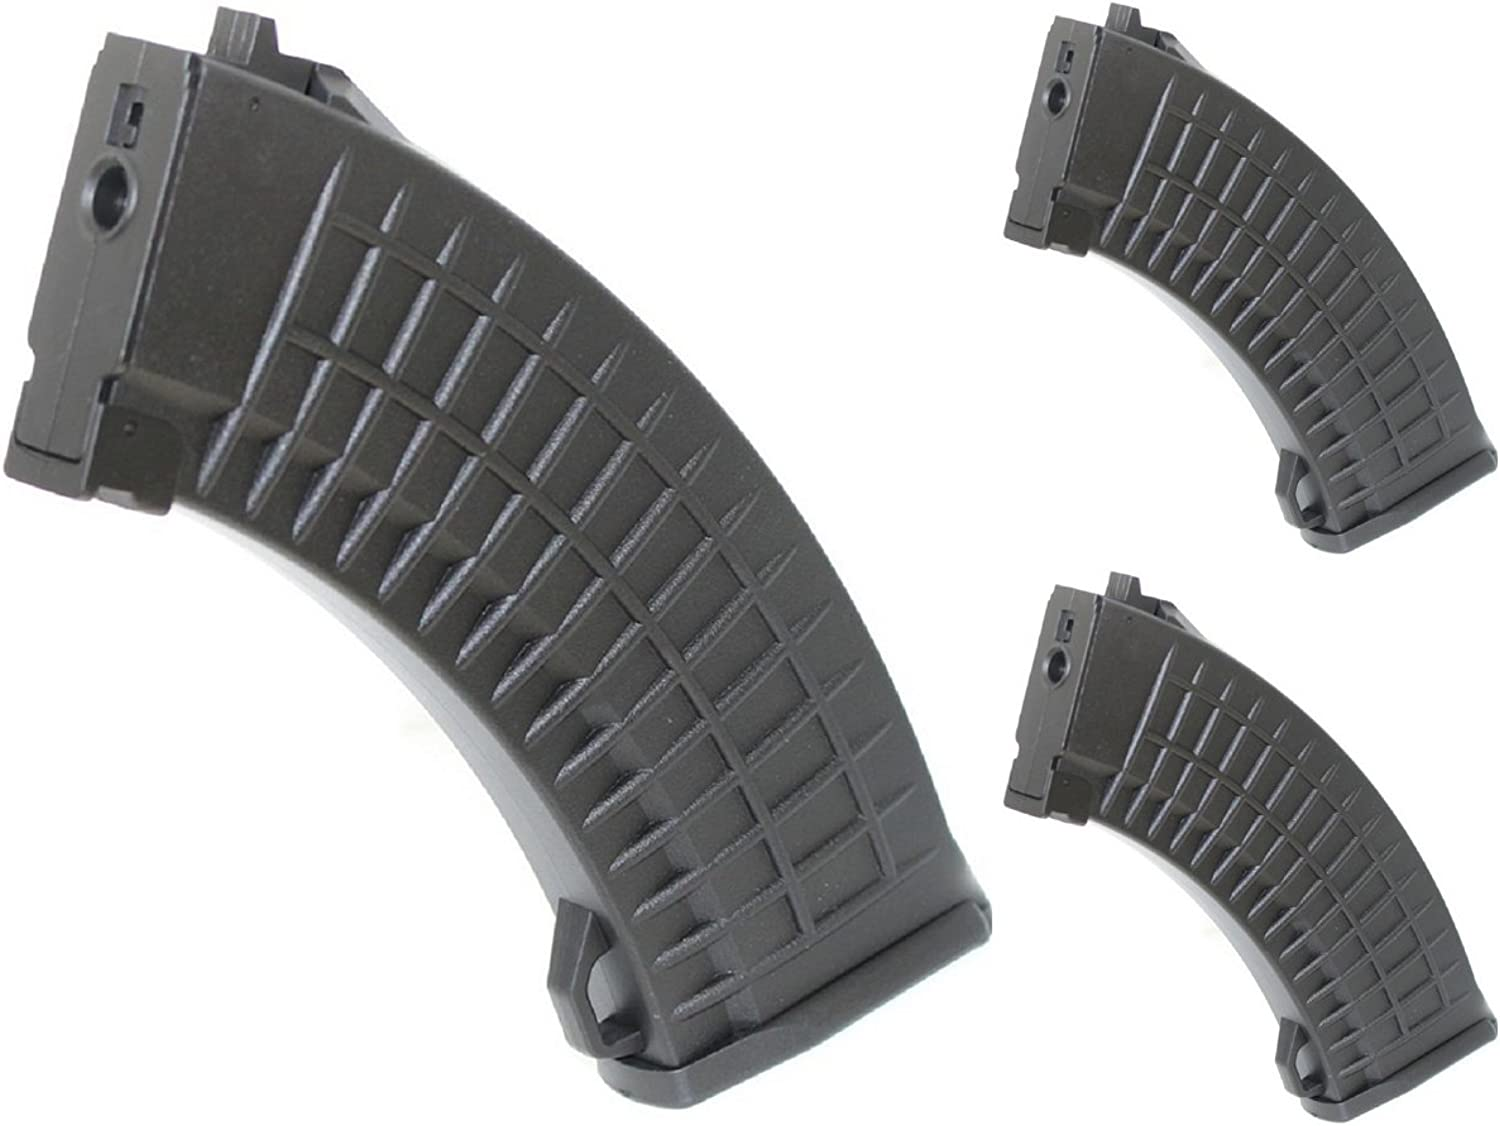 Airsoft Shooting Gear 3pcs Pack CYMA 150rd MidCap Waffle Magazine for AKSeries AEG Black